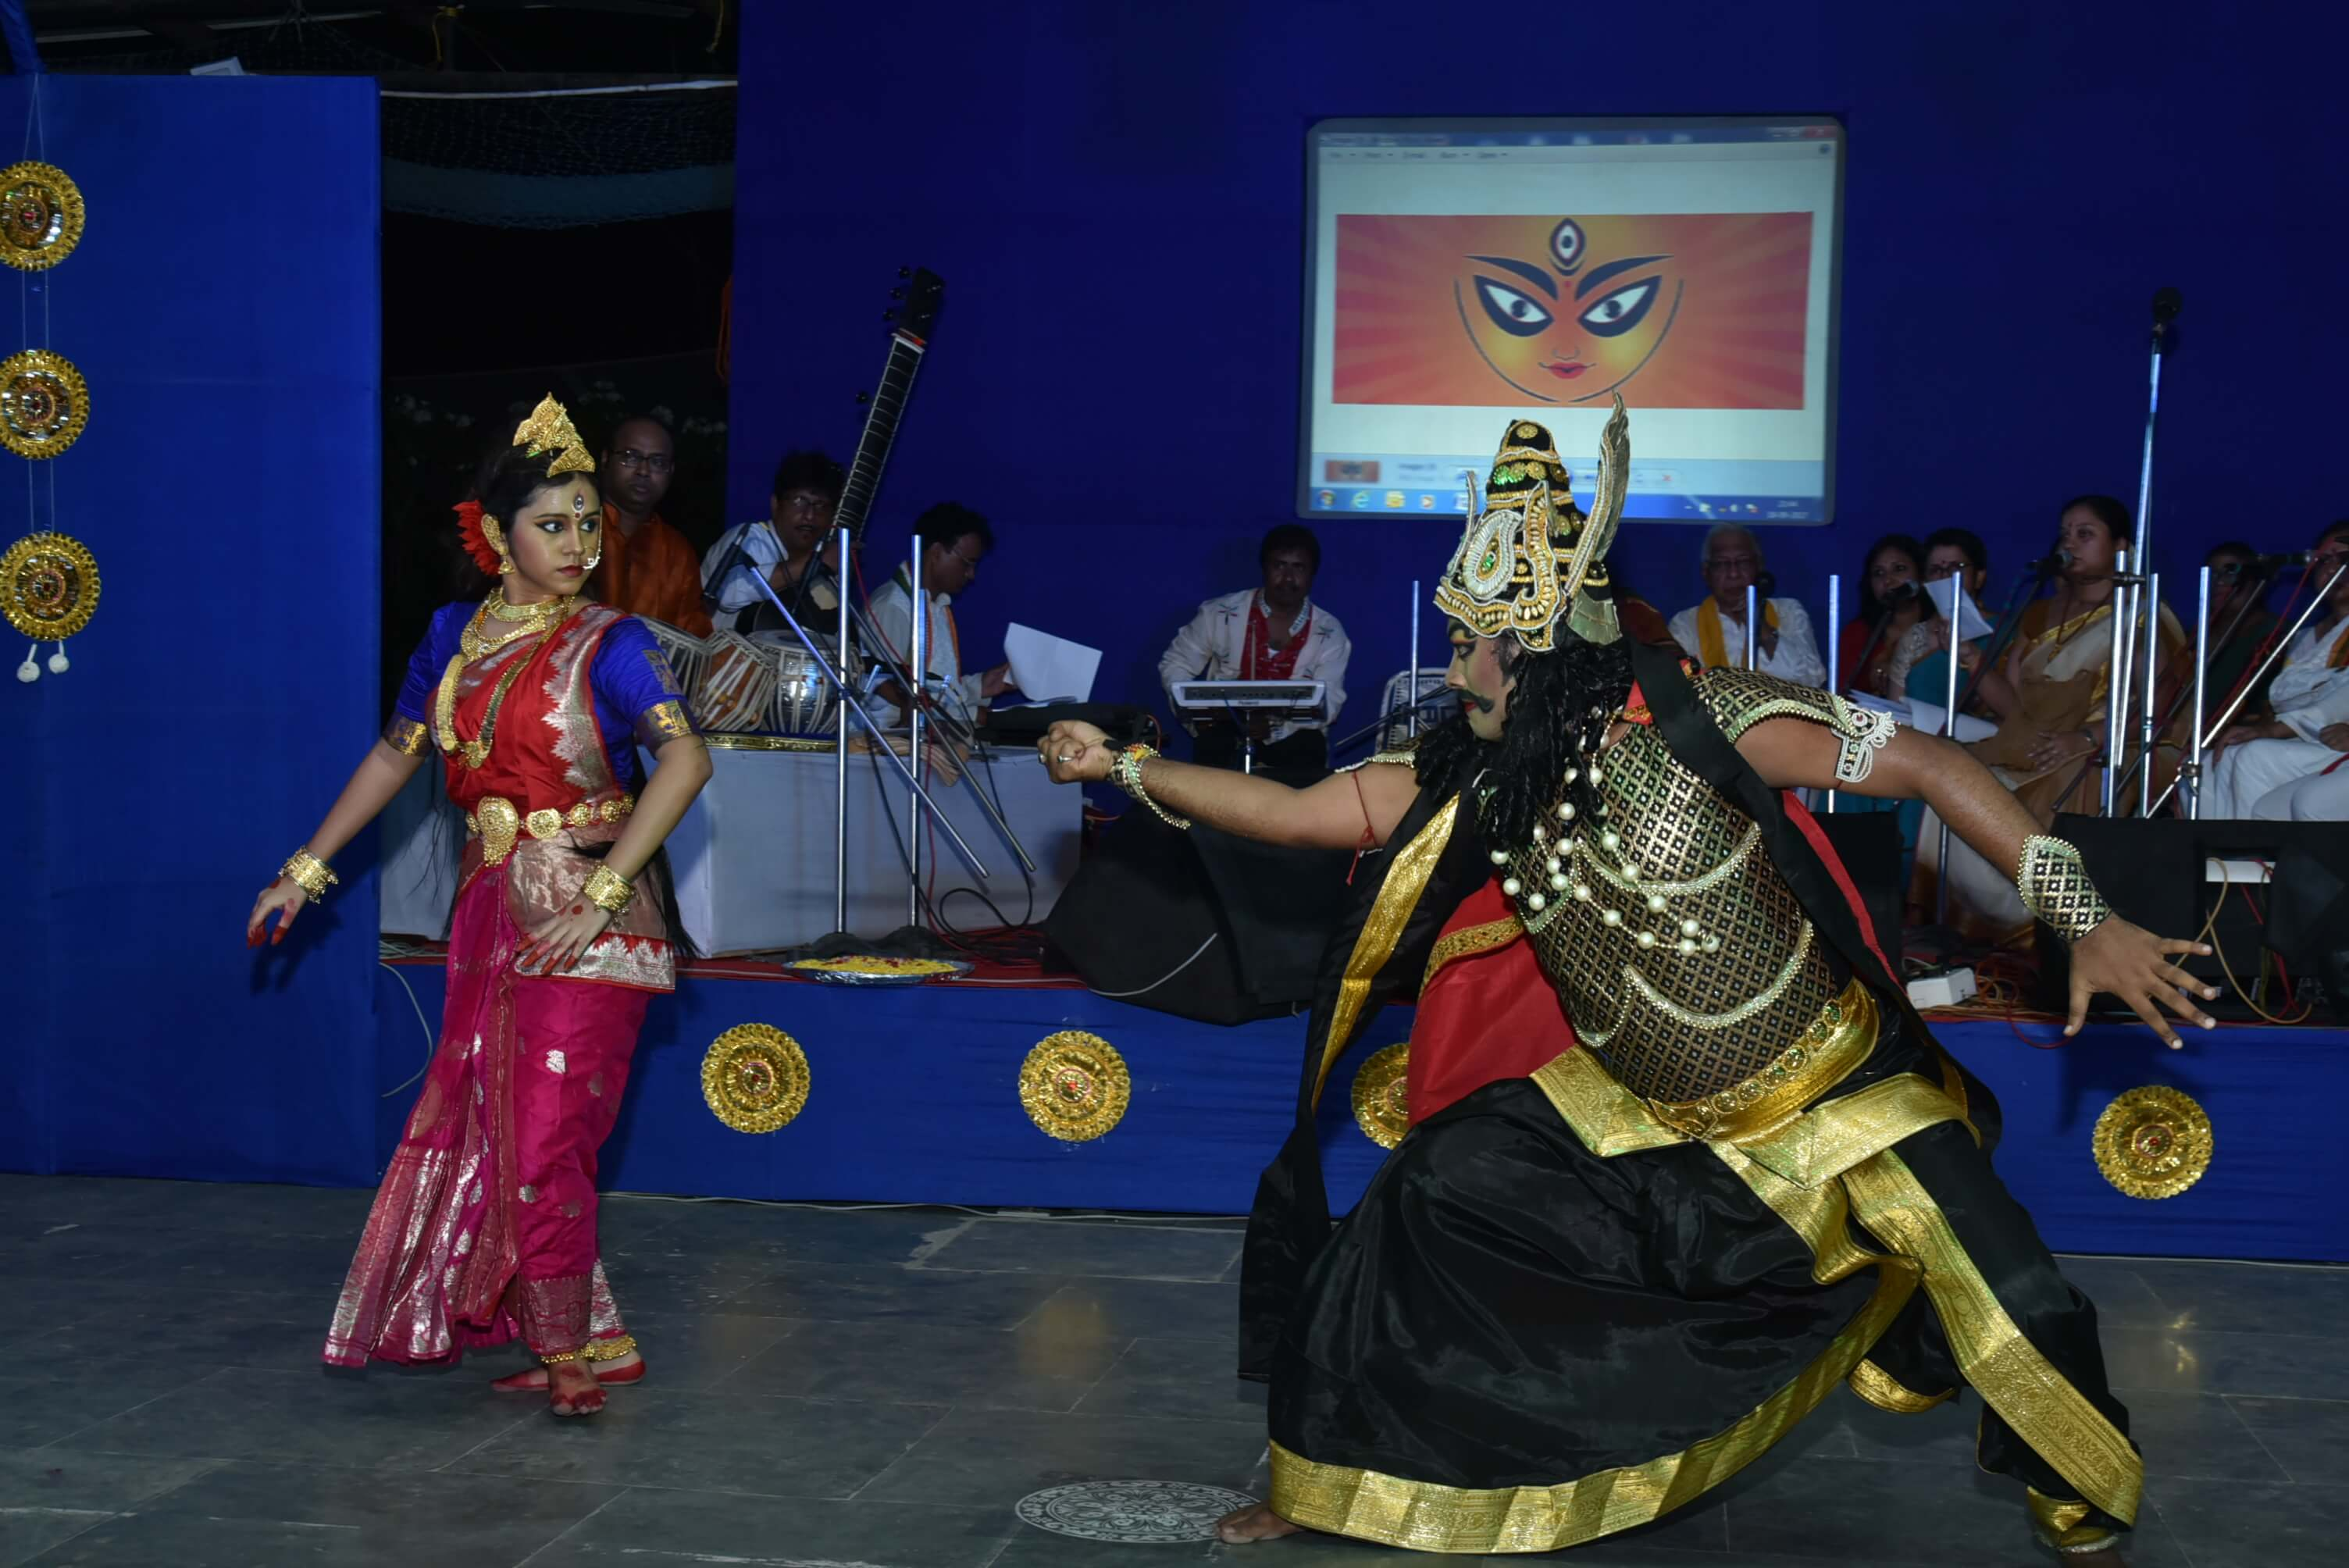 Images of club events in kolkata